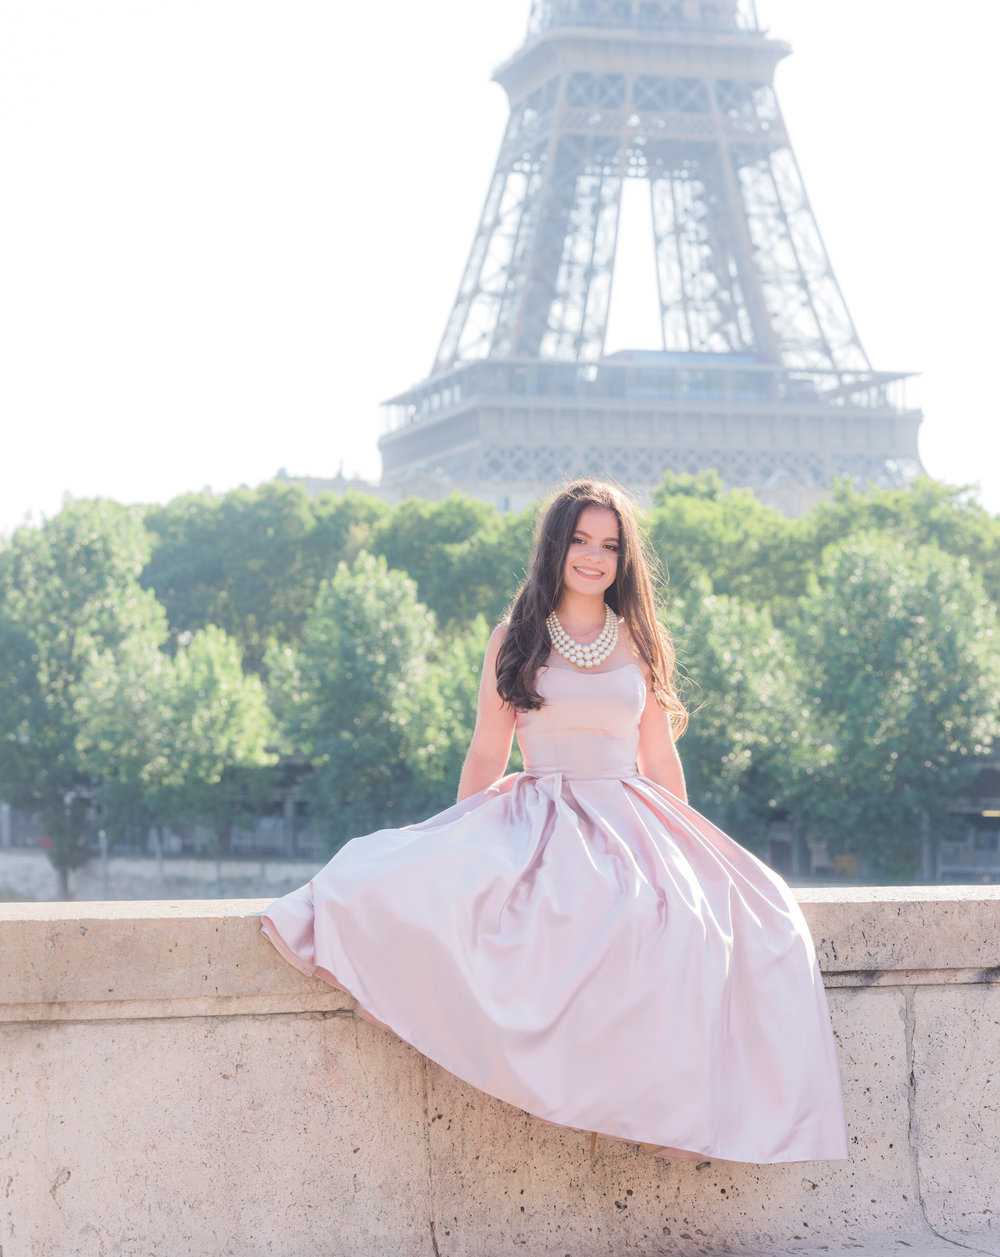 paris dream photo shoot for women in paris france